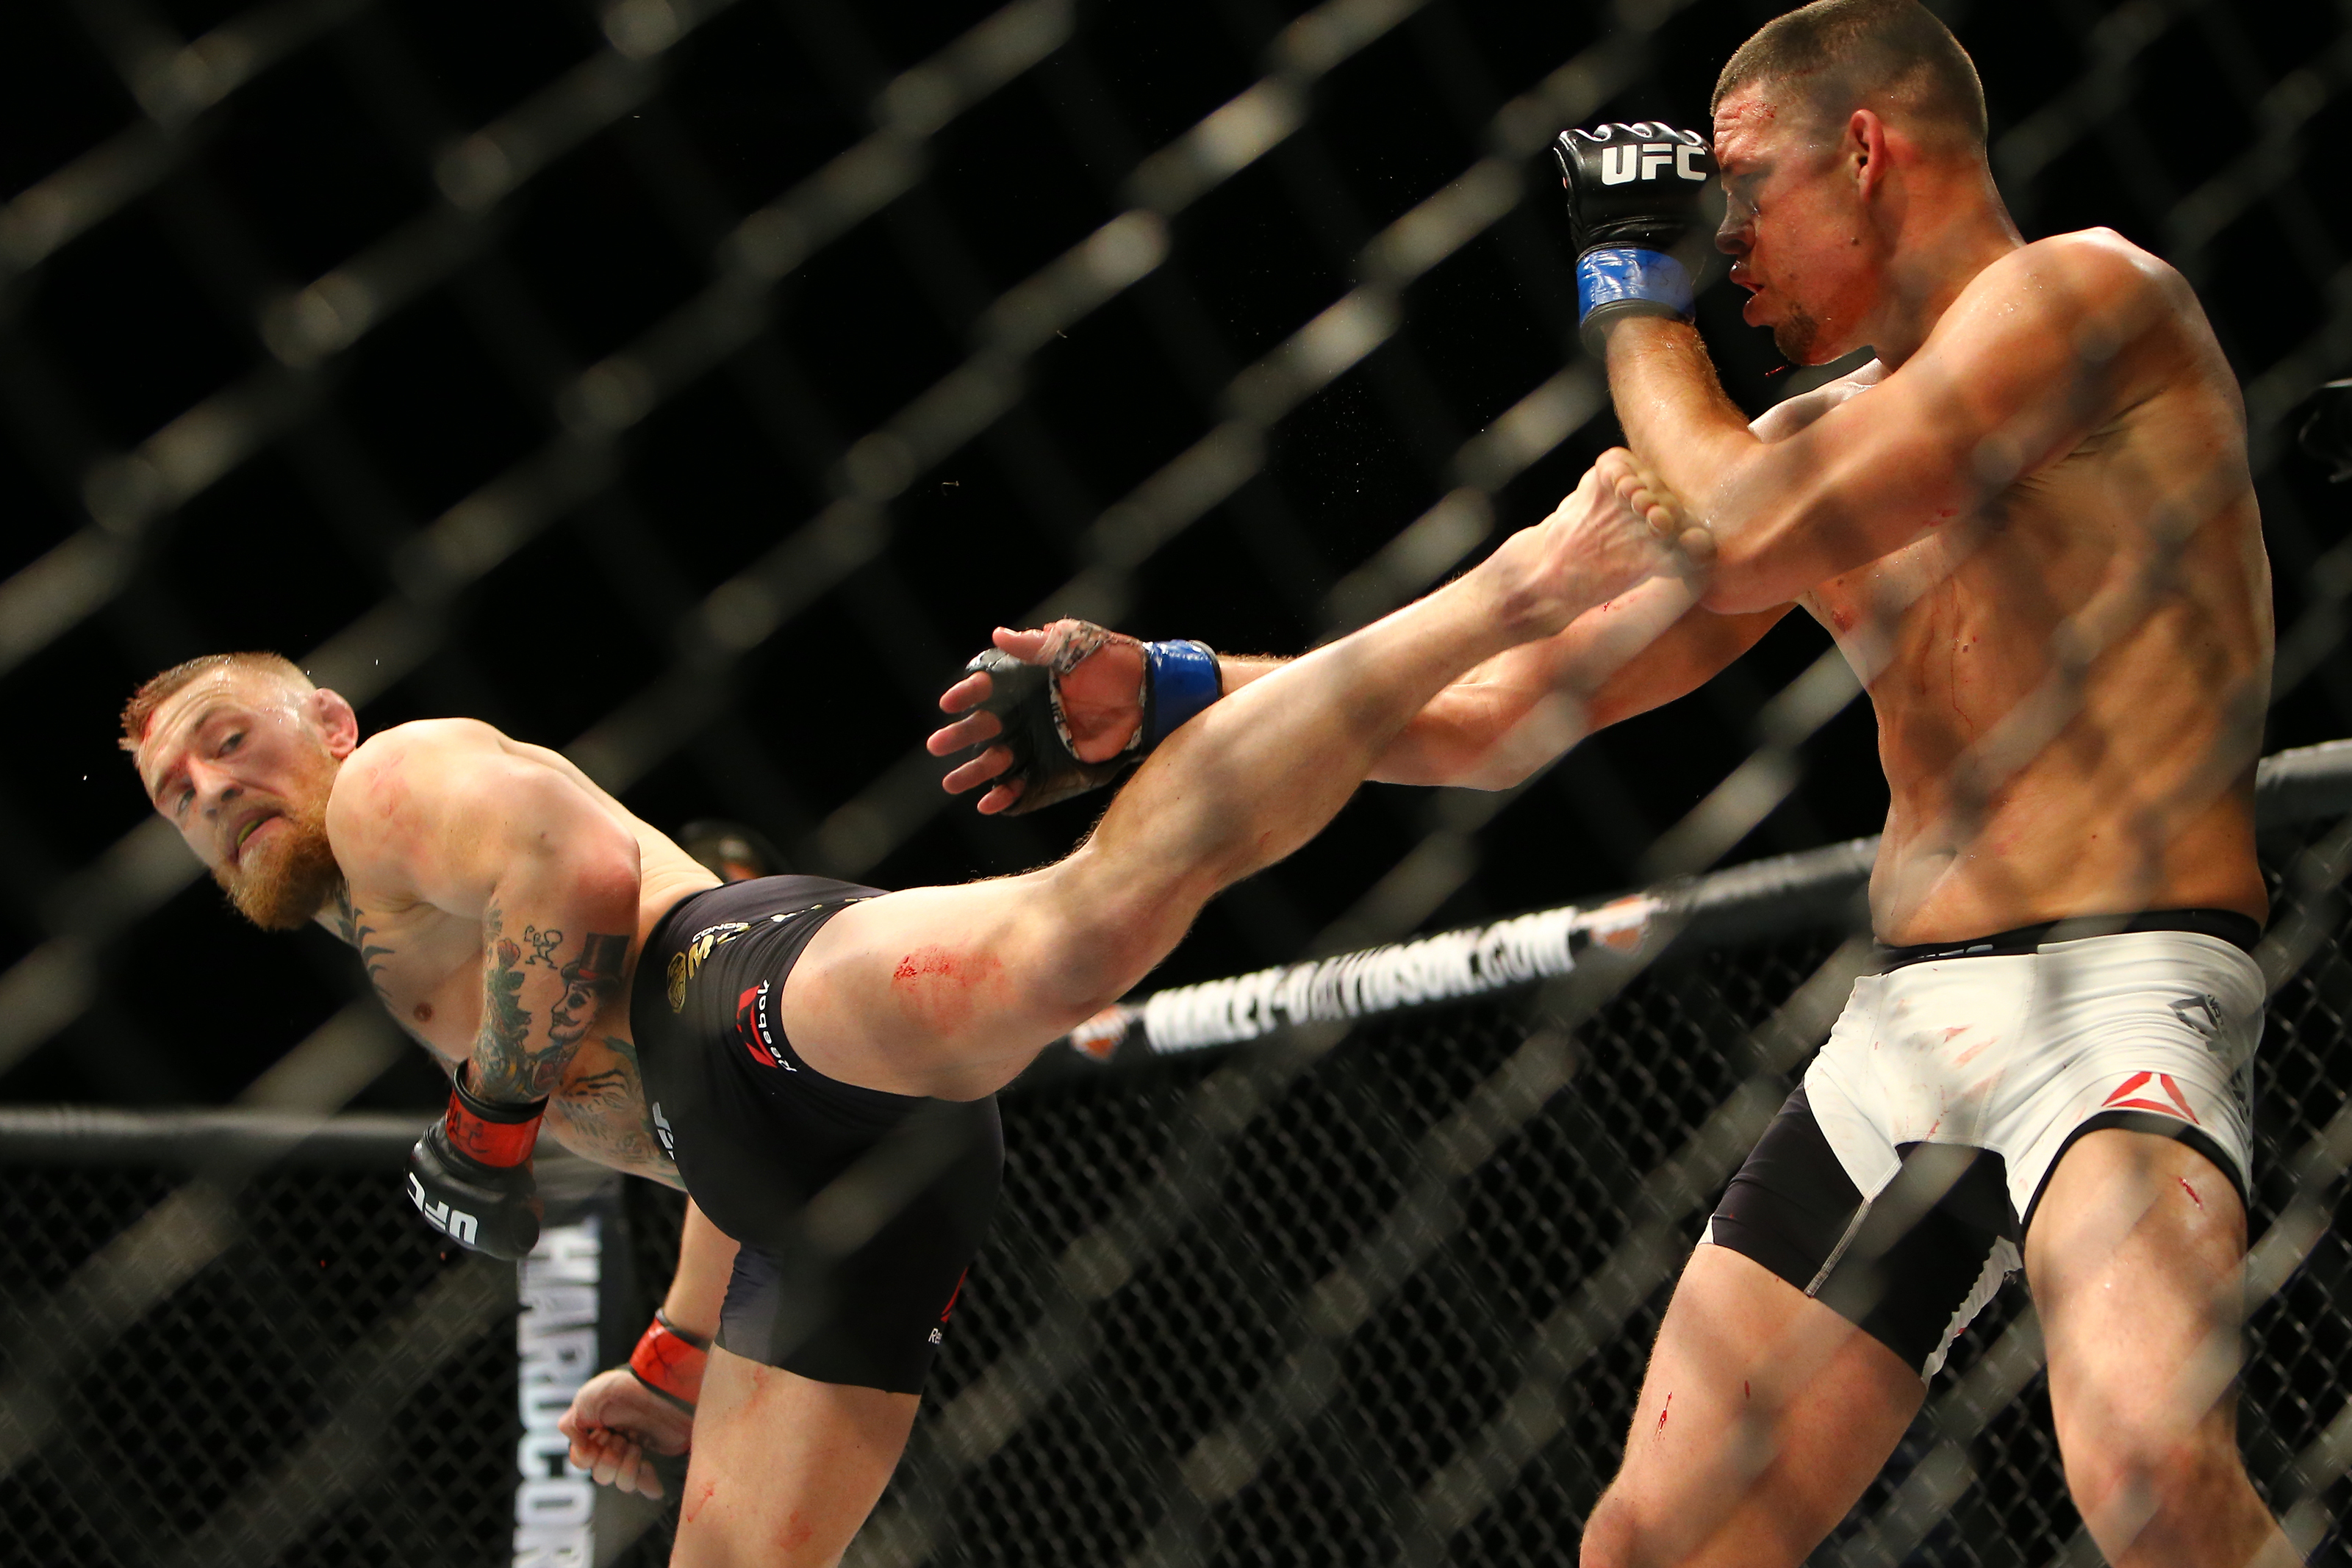 Conor McGregor (L) kicks Nate Diaz during UFC 196 on March 5, 2016. (Rey Del Rio/Getty Images)